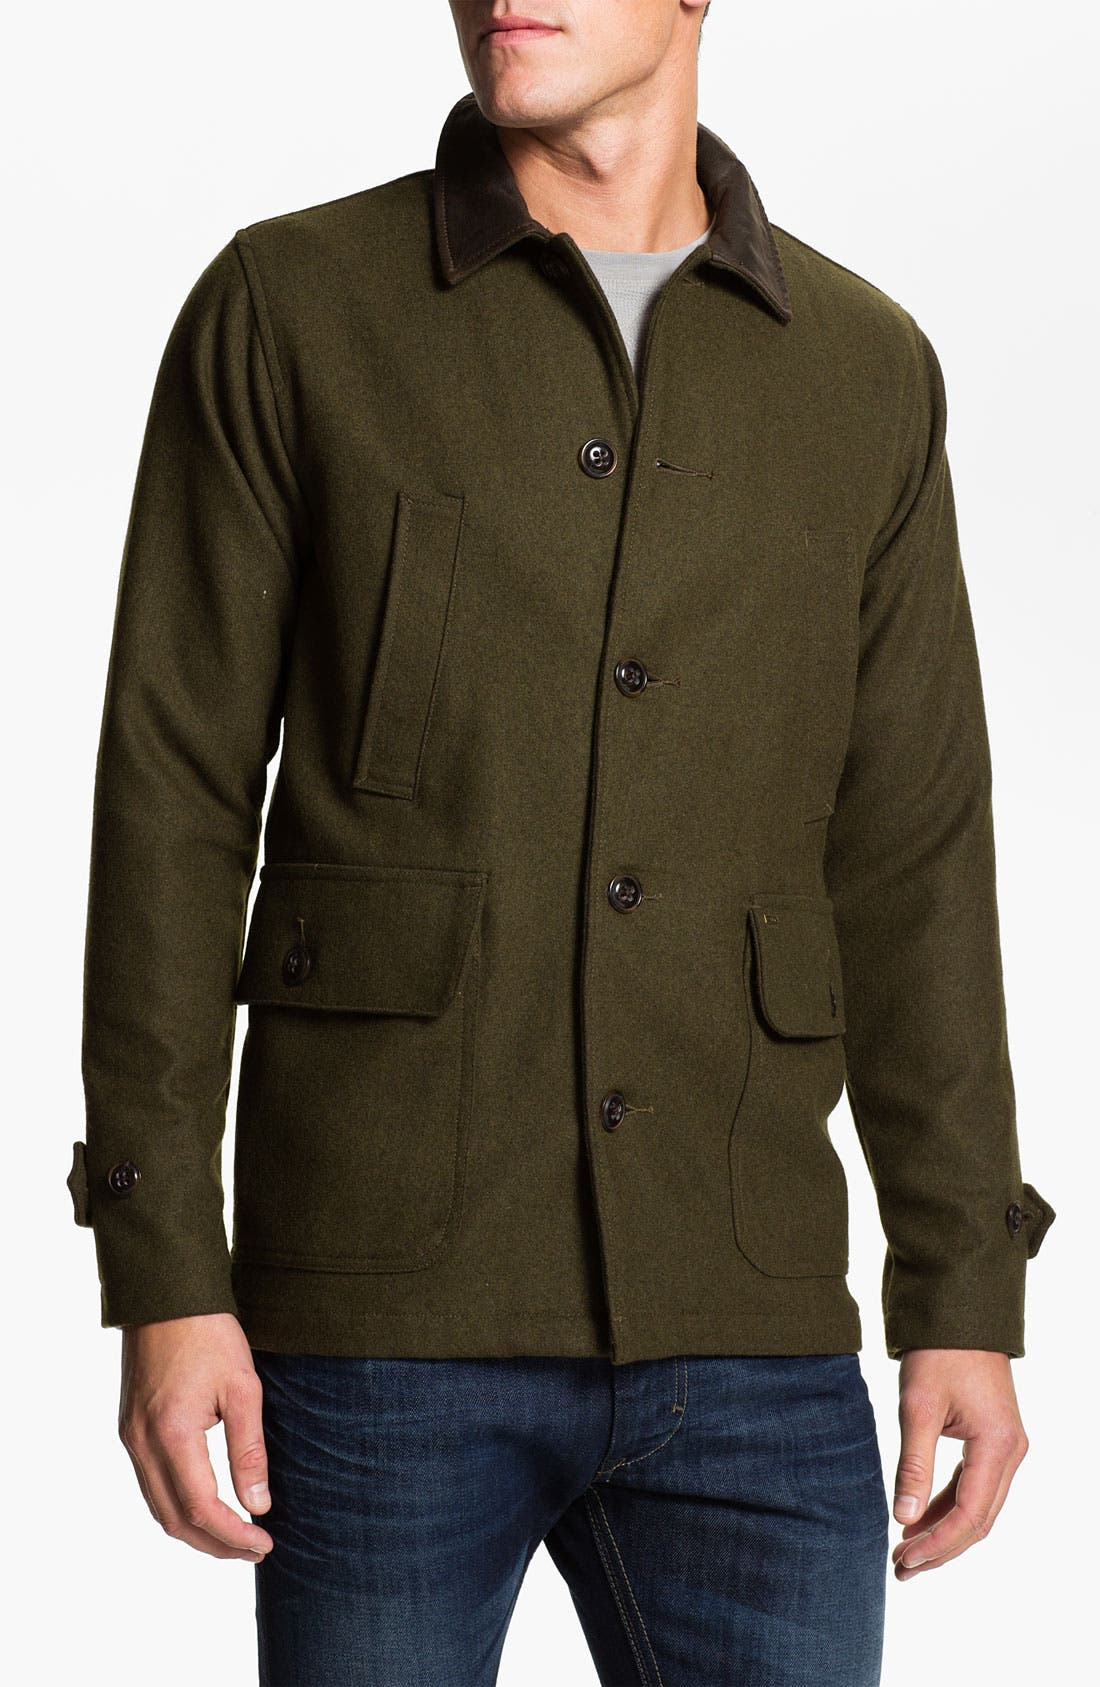 Alternate Image 1 Selected - Obey 'Berlin' Wool Blend Jacket